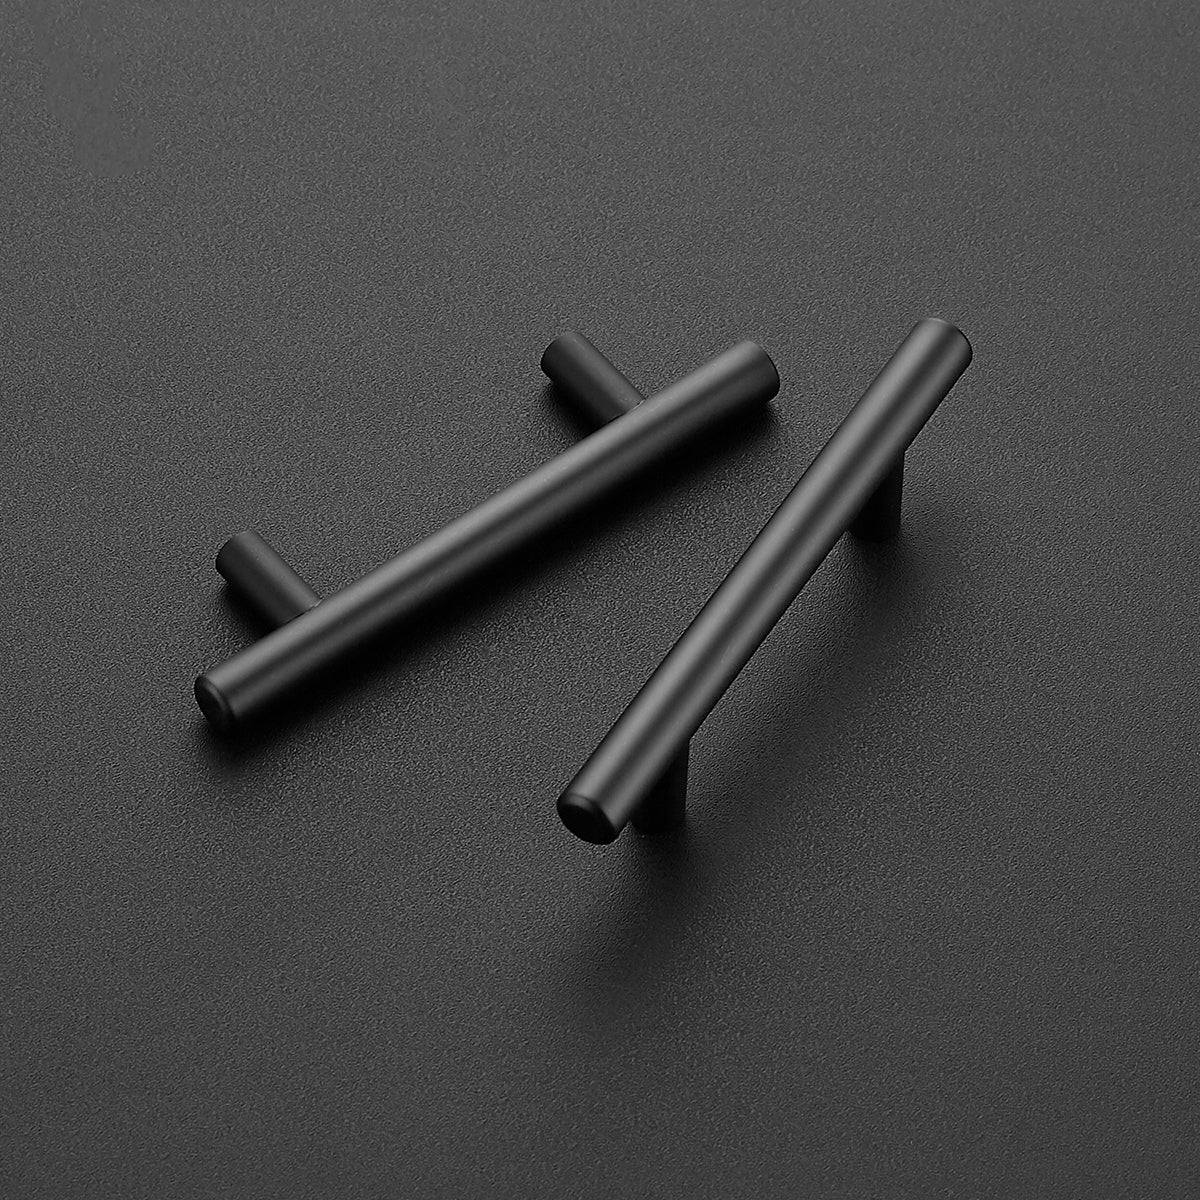 "15 Pack 6 inch Cabinet Pulls Matte Black Stainless Steel Kitchen Cupboard Handles Cabinet Handles 3.75"" Hole Center"